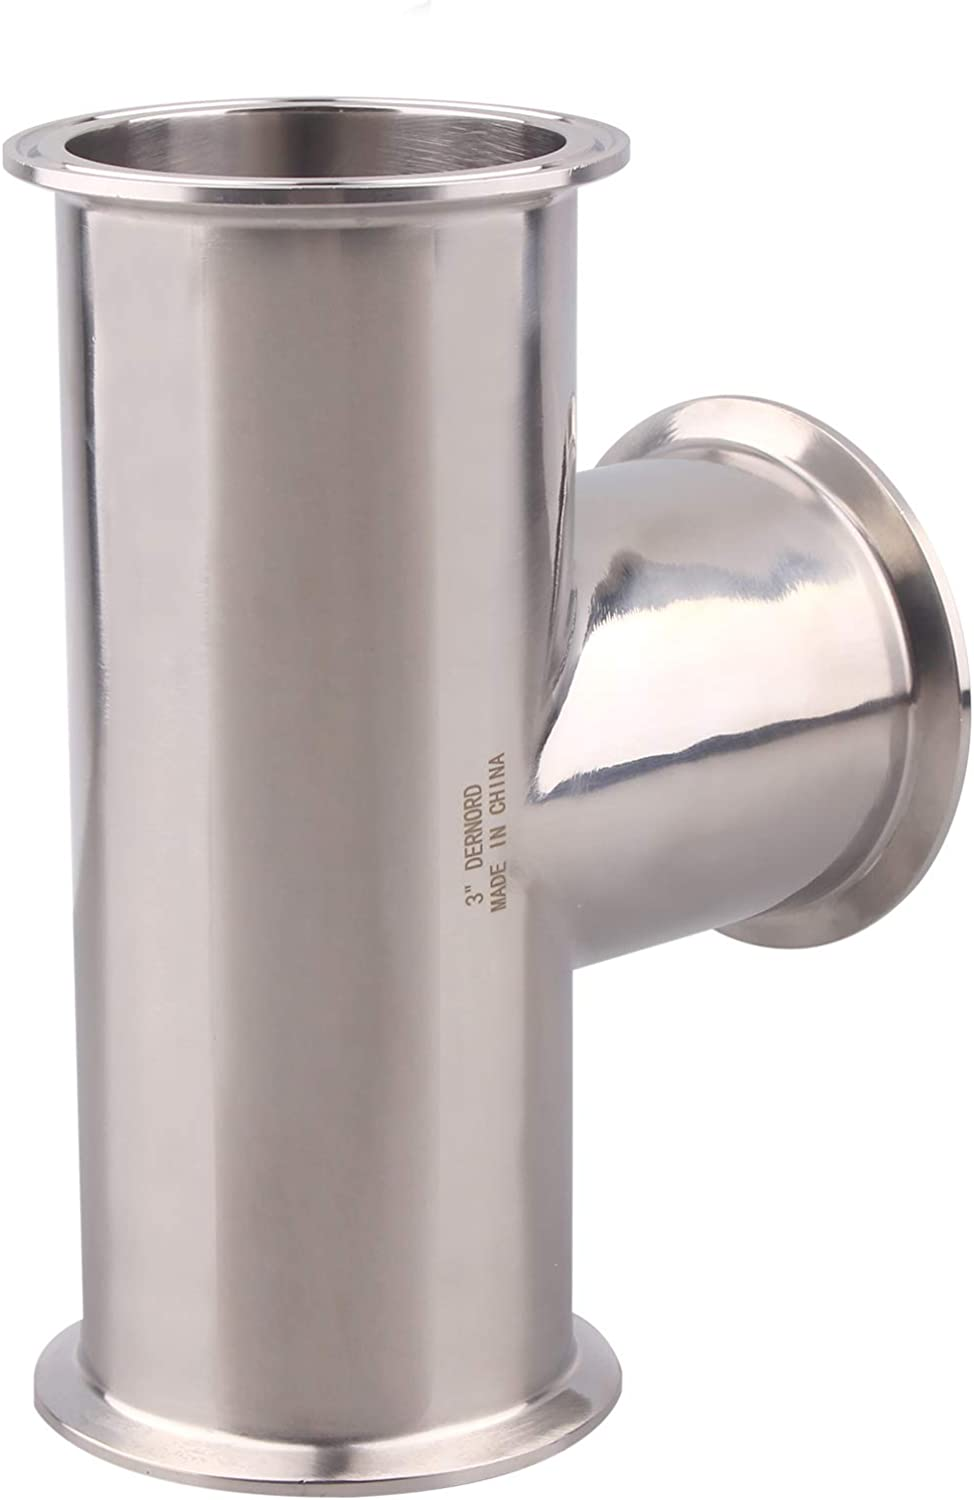 DERNORD Clamp Tee Year-end gift 3 Way Stainless 304 Fit Steel Sanitary Washington Mall Fitting